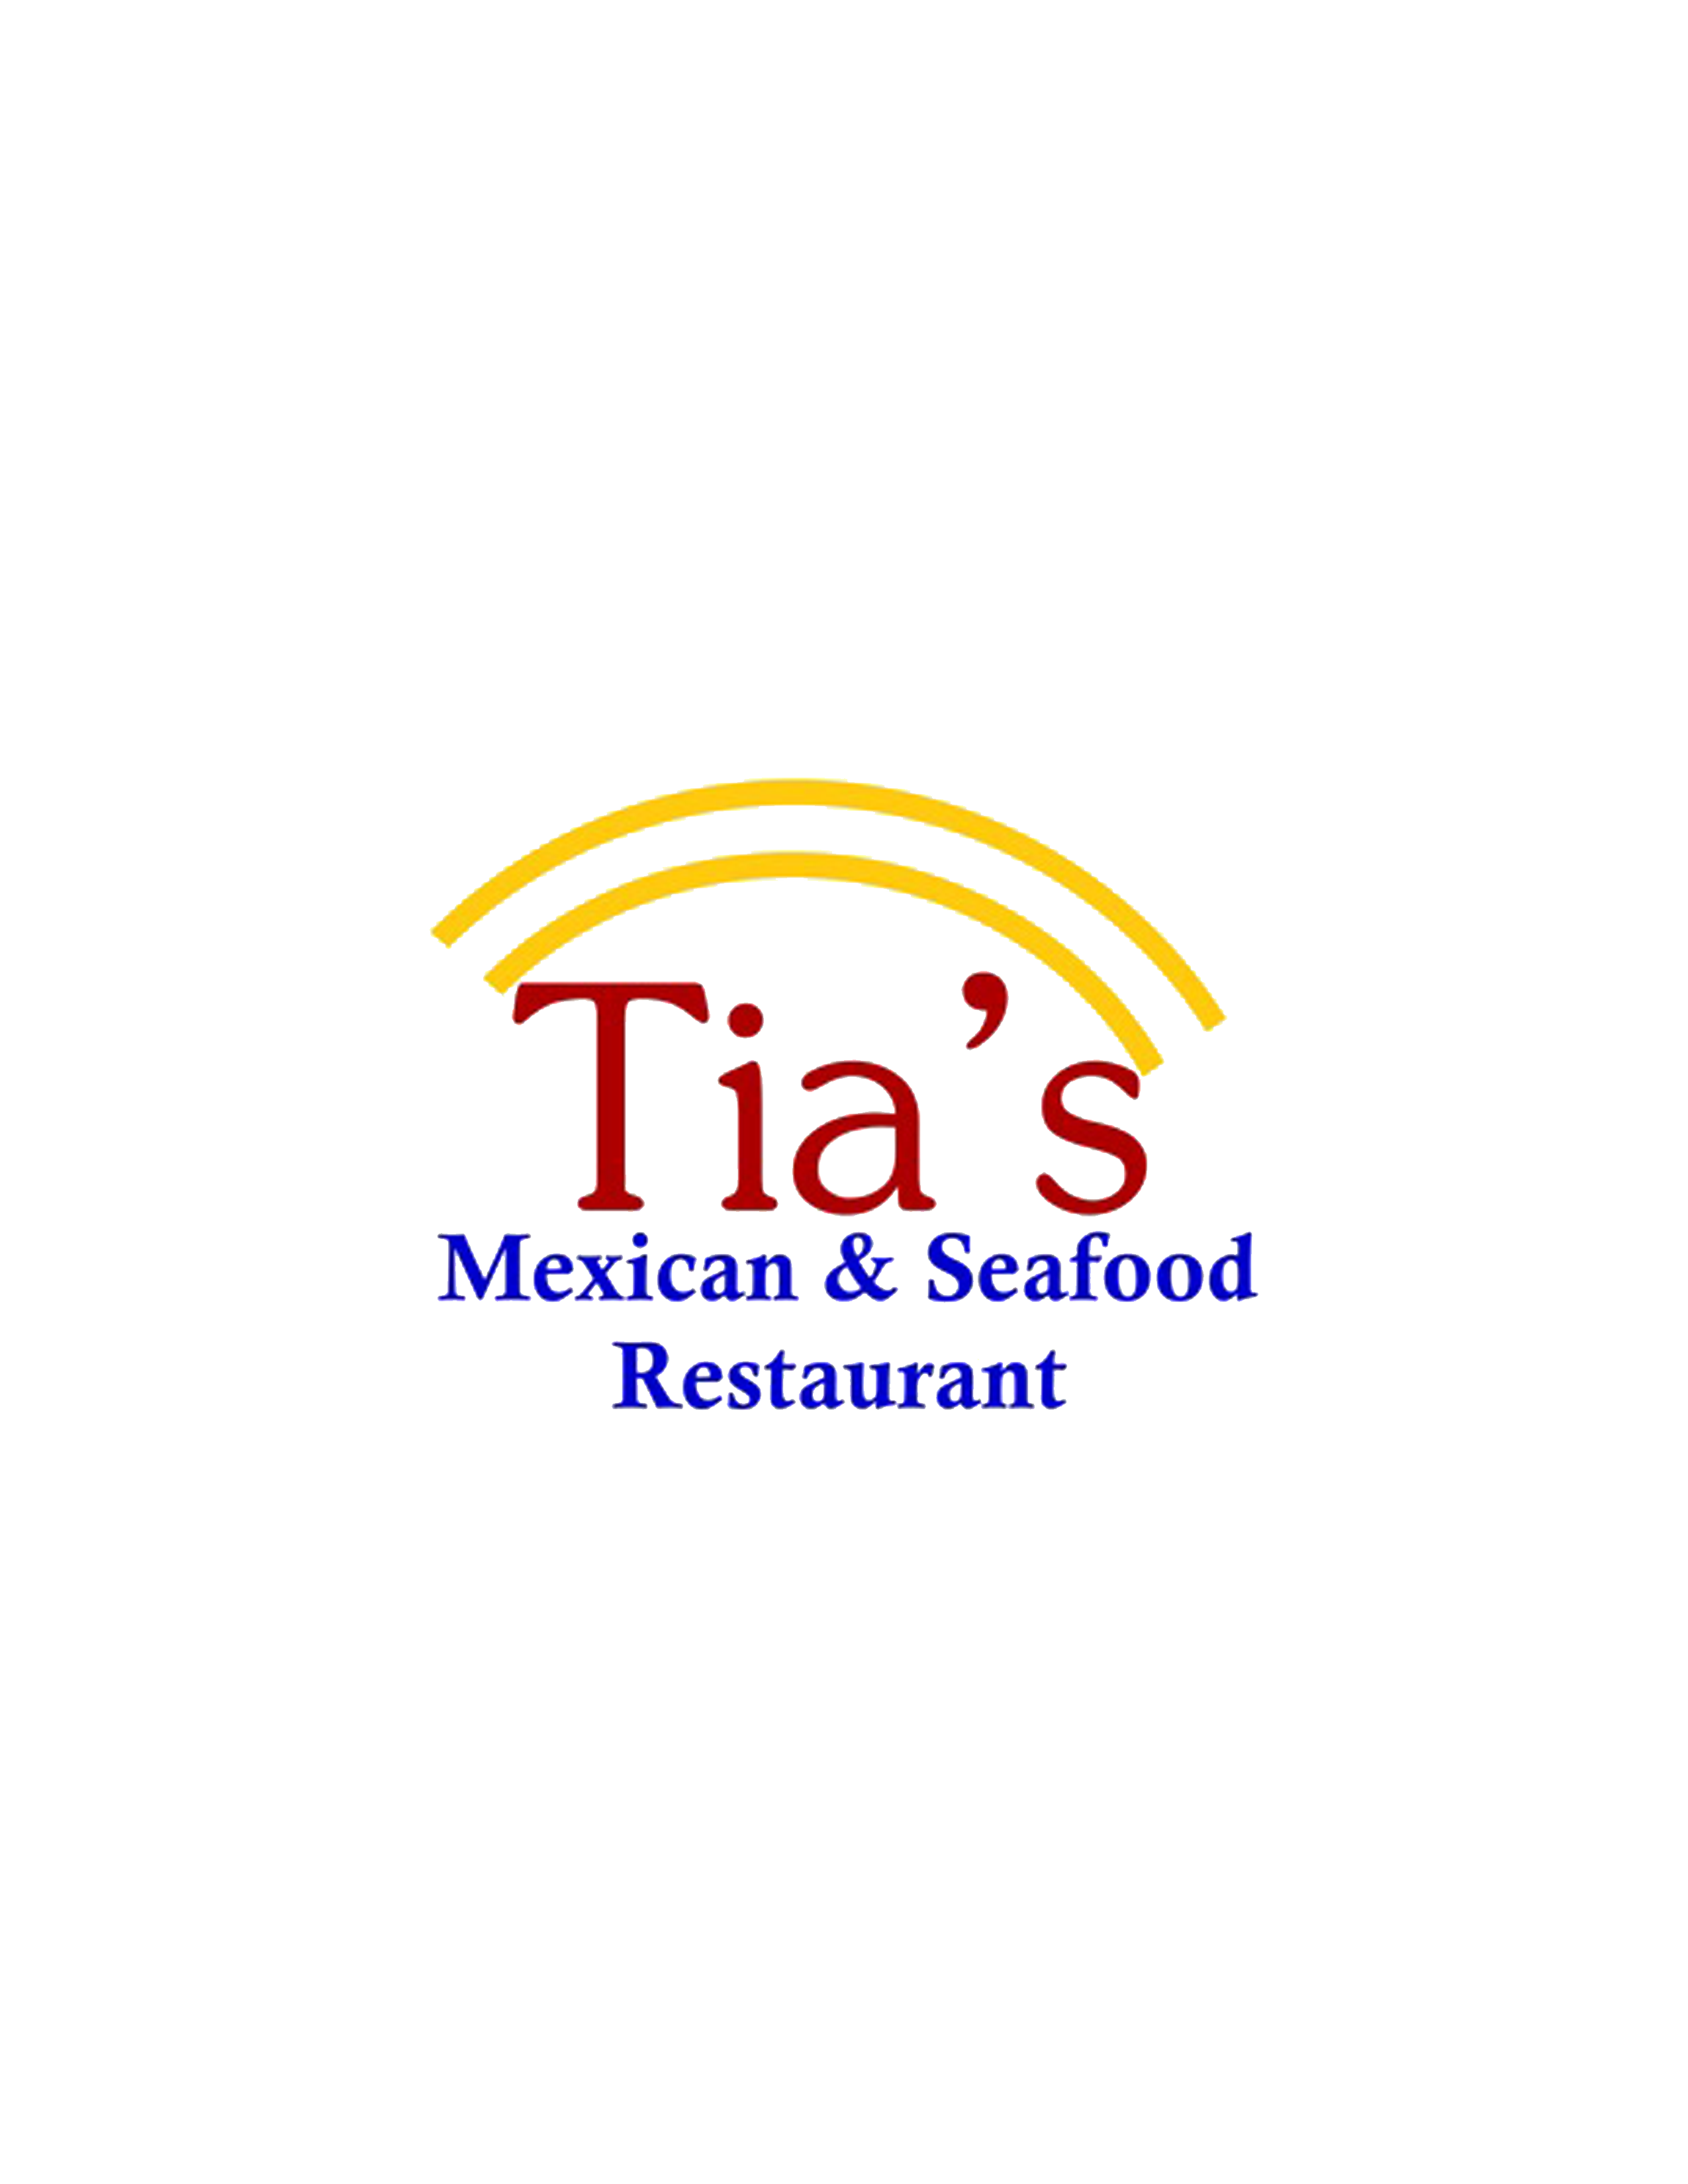 Tia's Mexican & Seafood